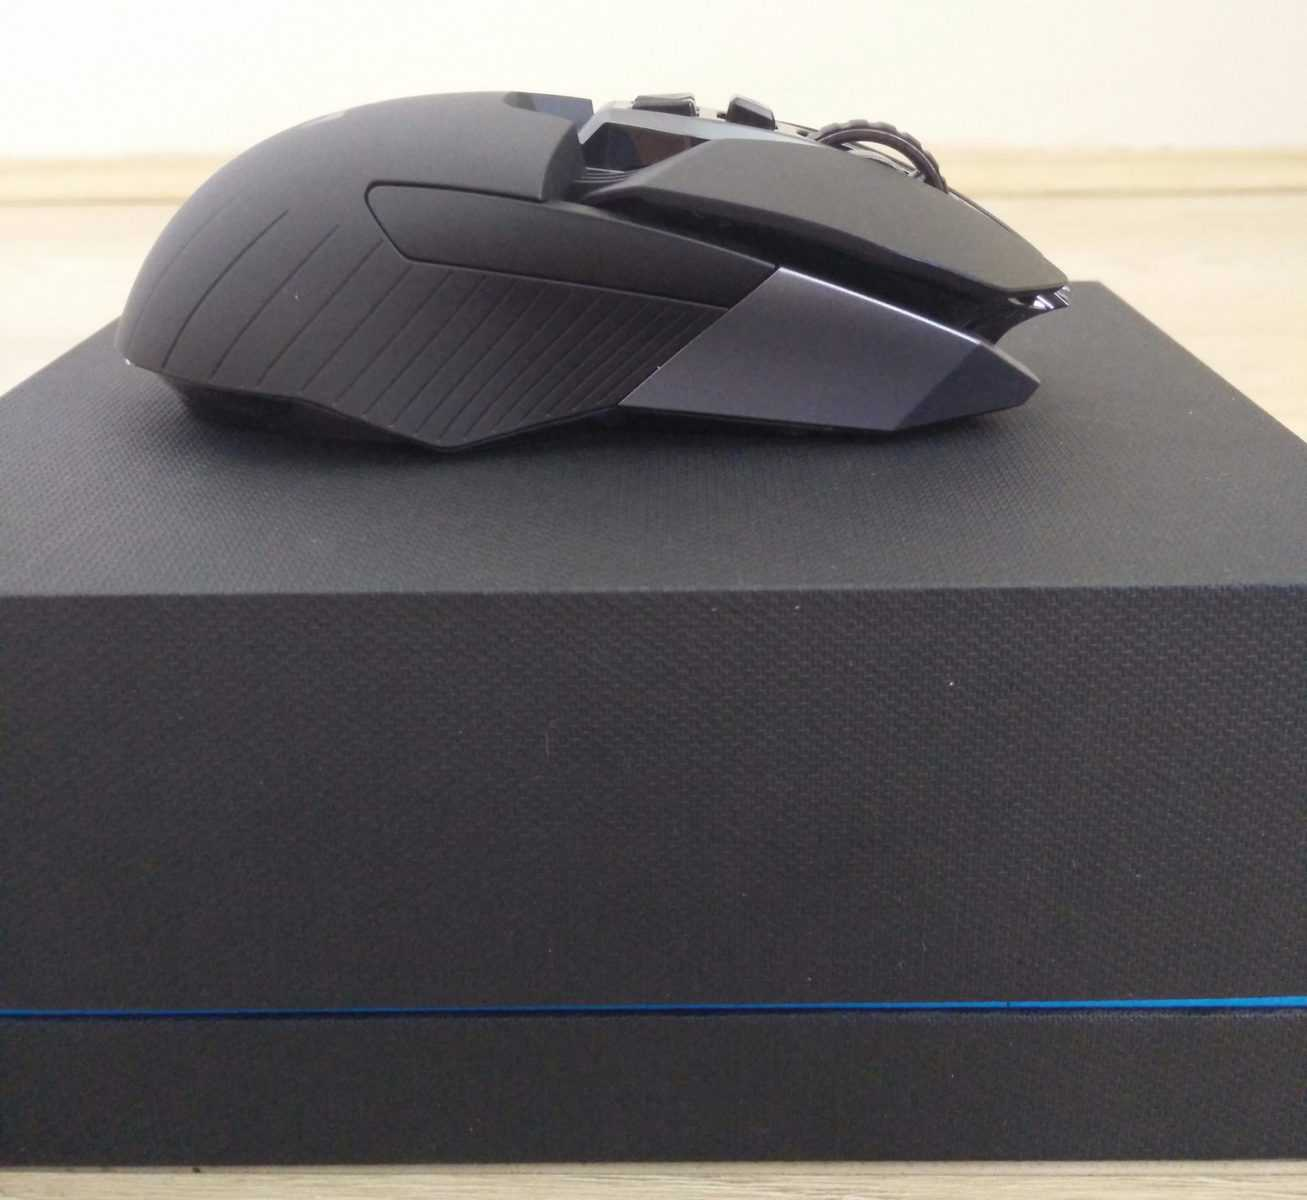 Logitech G900 Chaos Spectrum Gaming Mouse Review The Streaming Blog Photo 18